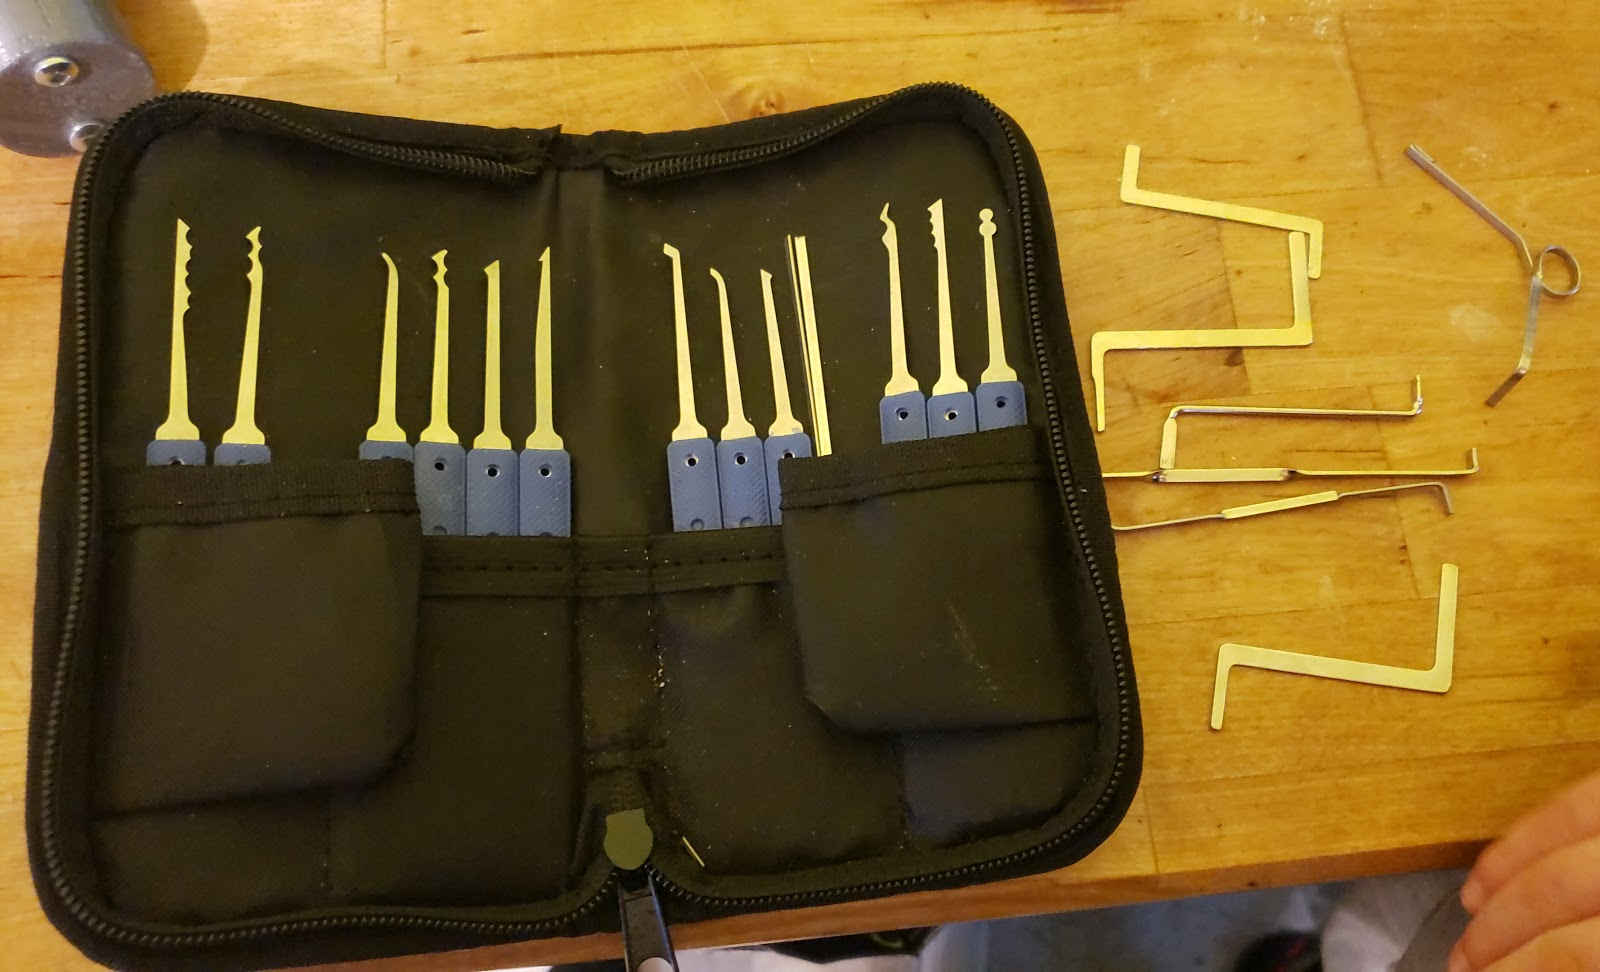 One week of lock picking